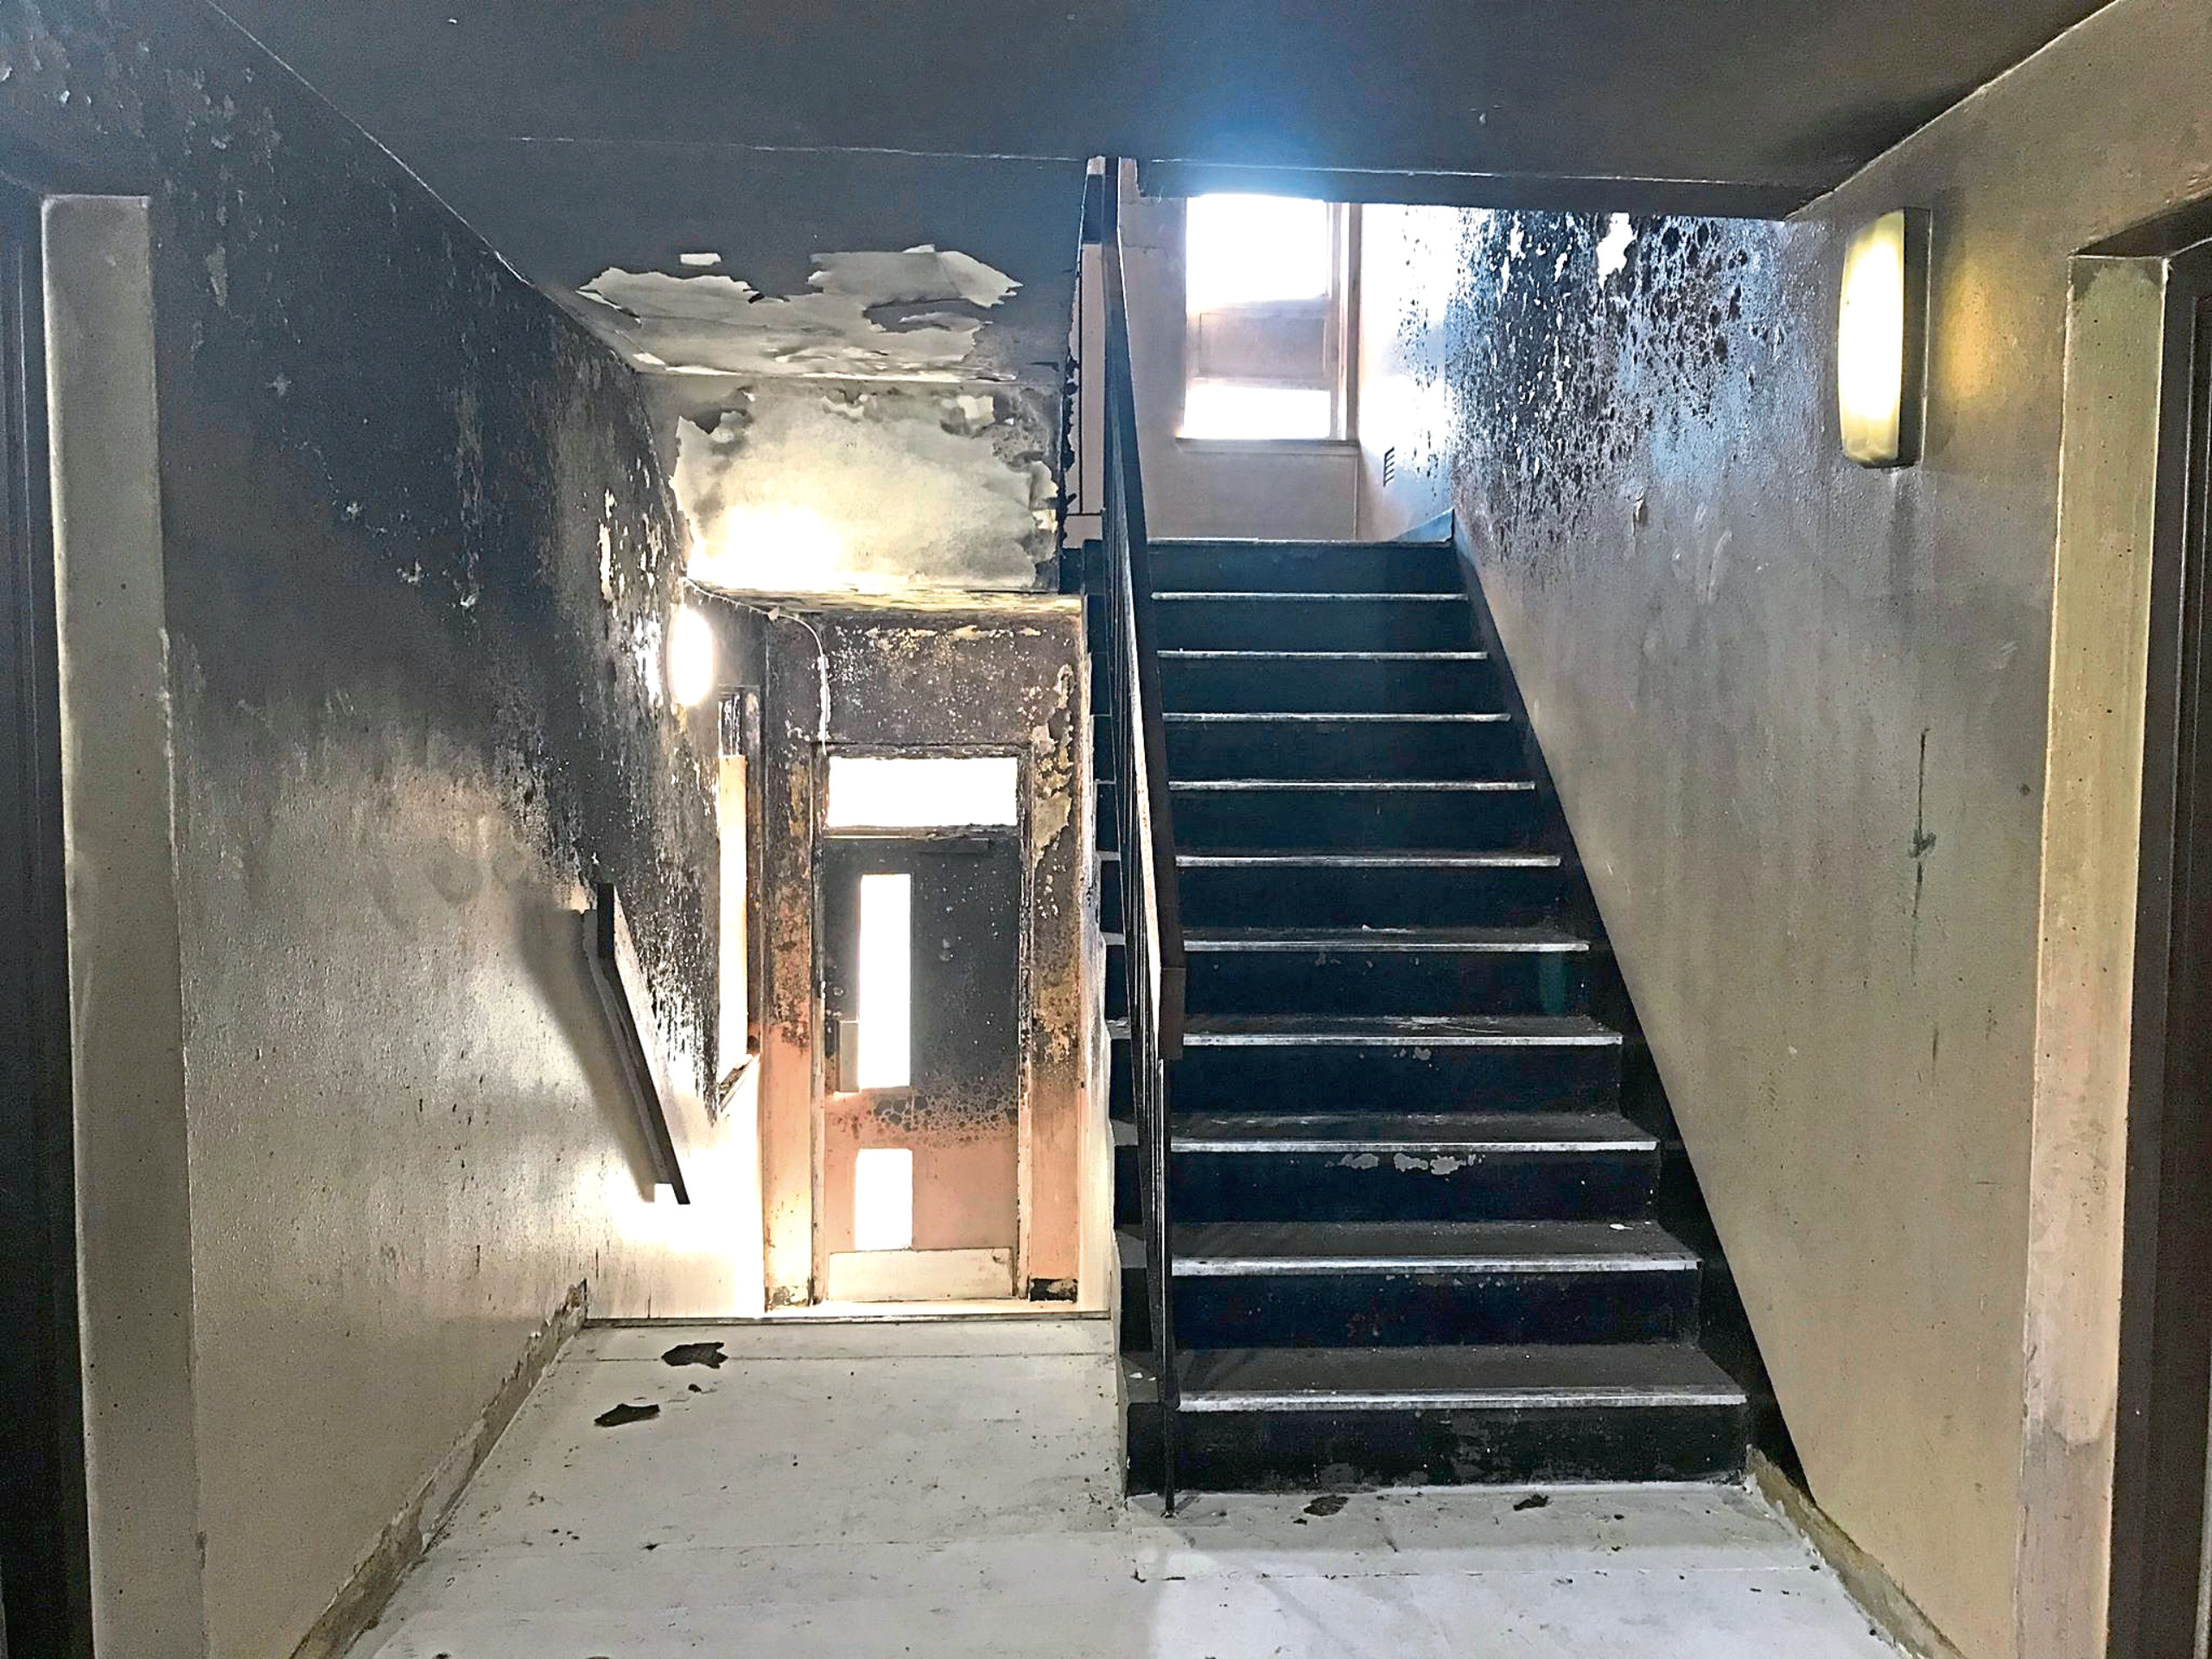 The fire damaged hallway in the building